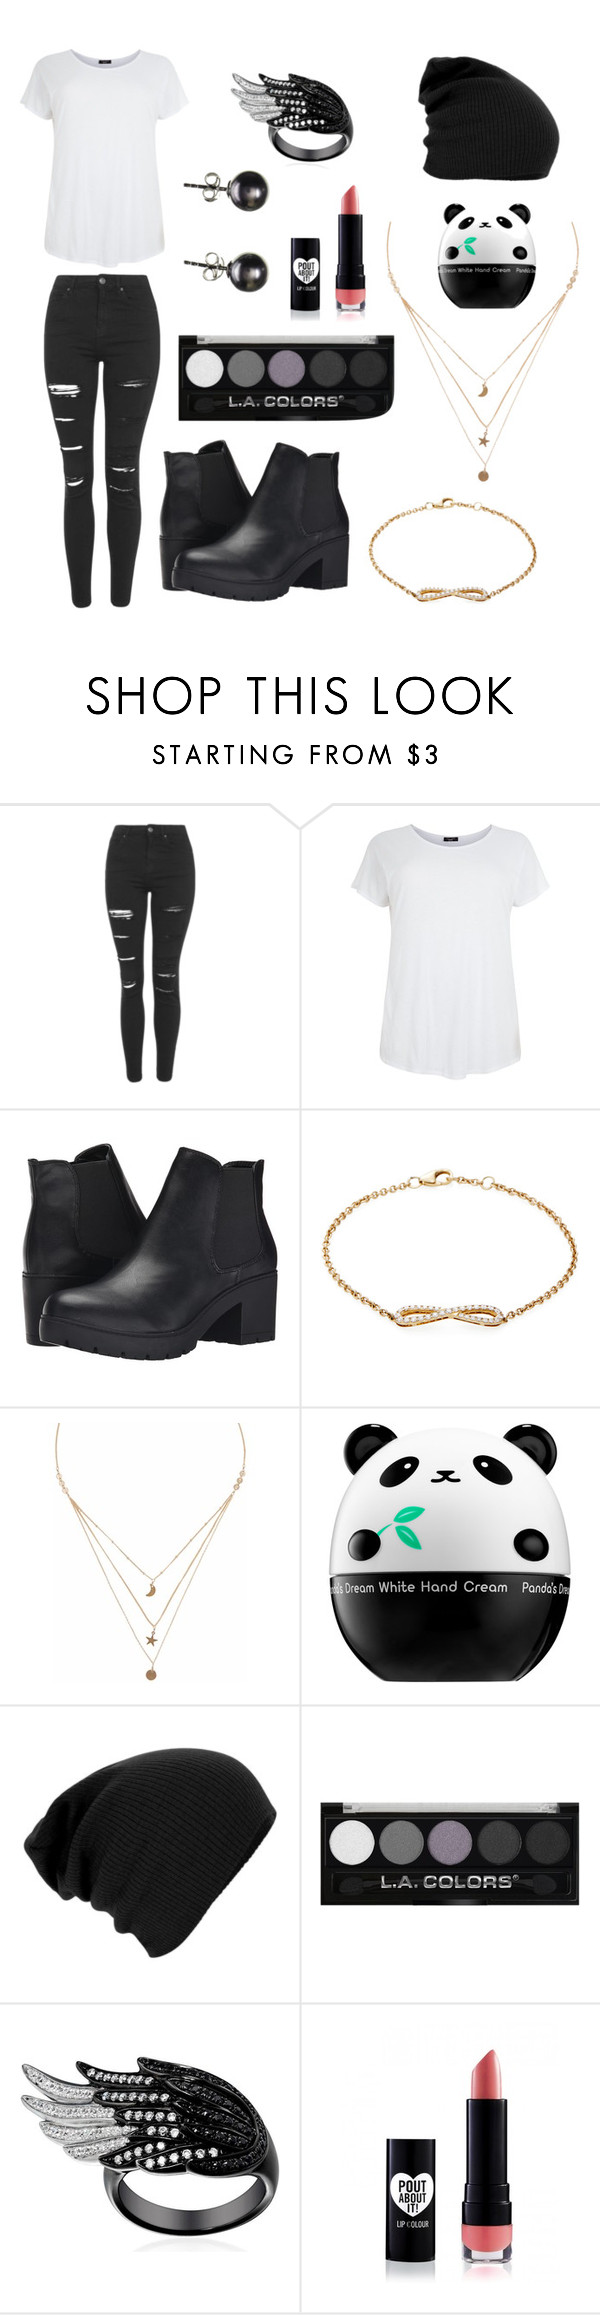 """""""Untitled #69"""" by amanda-s-irizarry ❤ liked on Polyvore featuring Topshop, Steve Madden, Nephora, Liz Law and Tony Moly"""